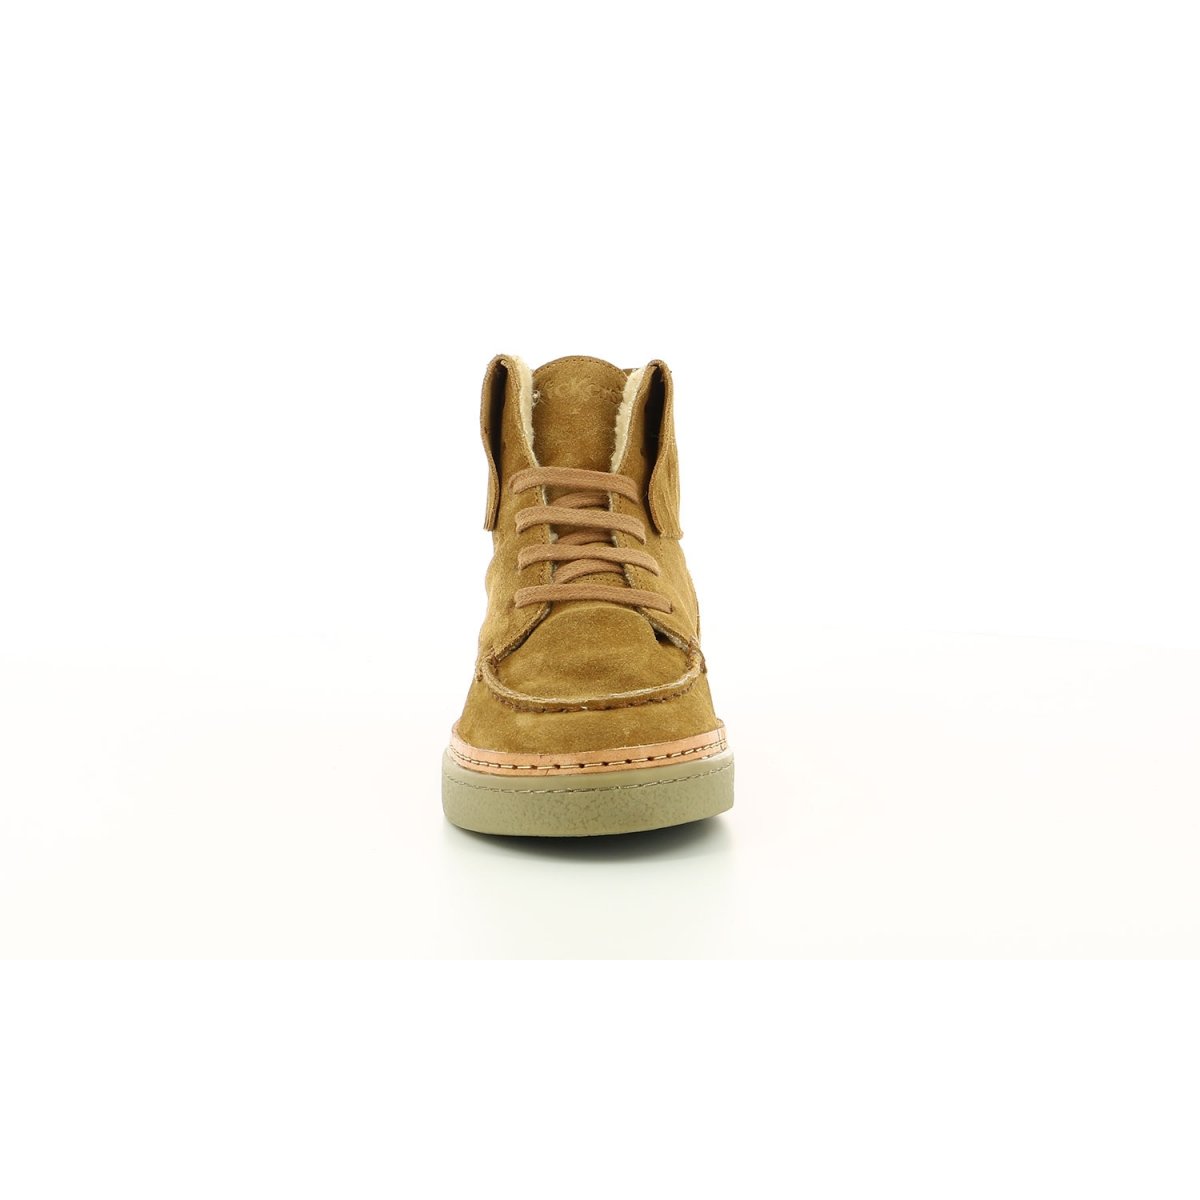 Sneakers Hautes Femme Stream camel Chaussures Femme Kickers